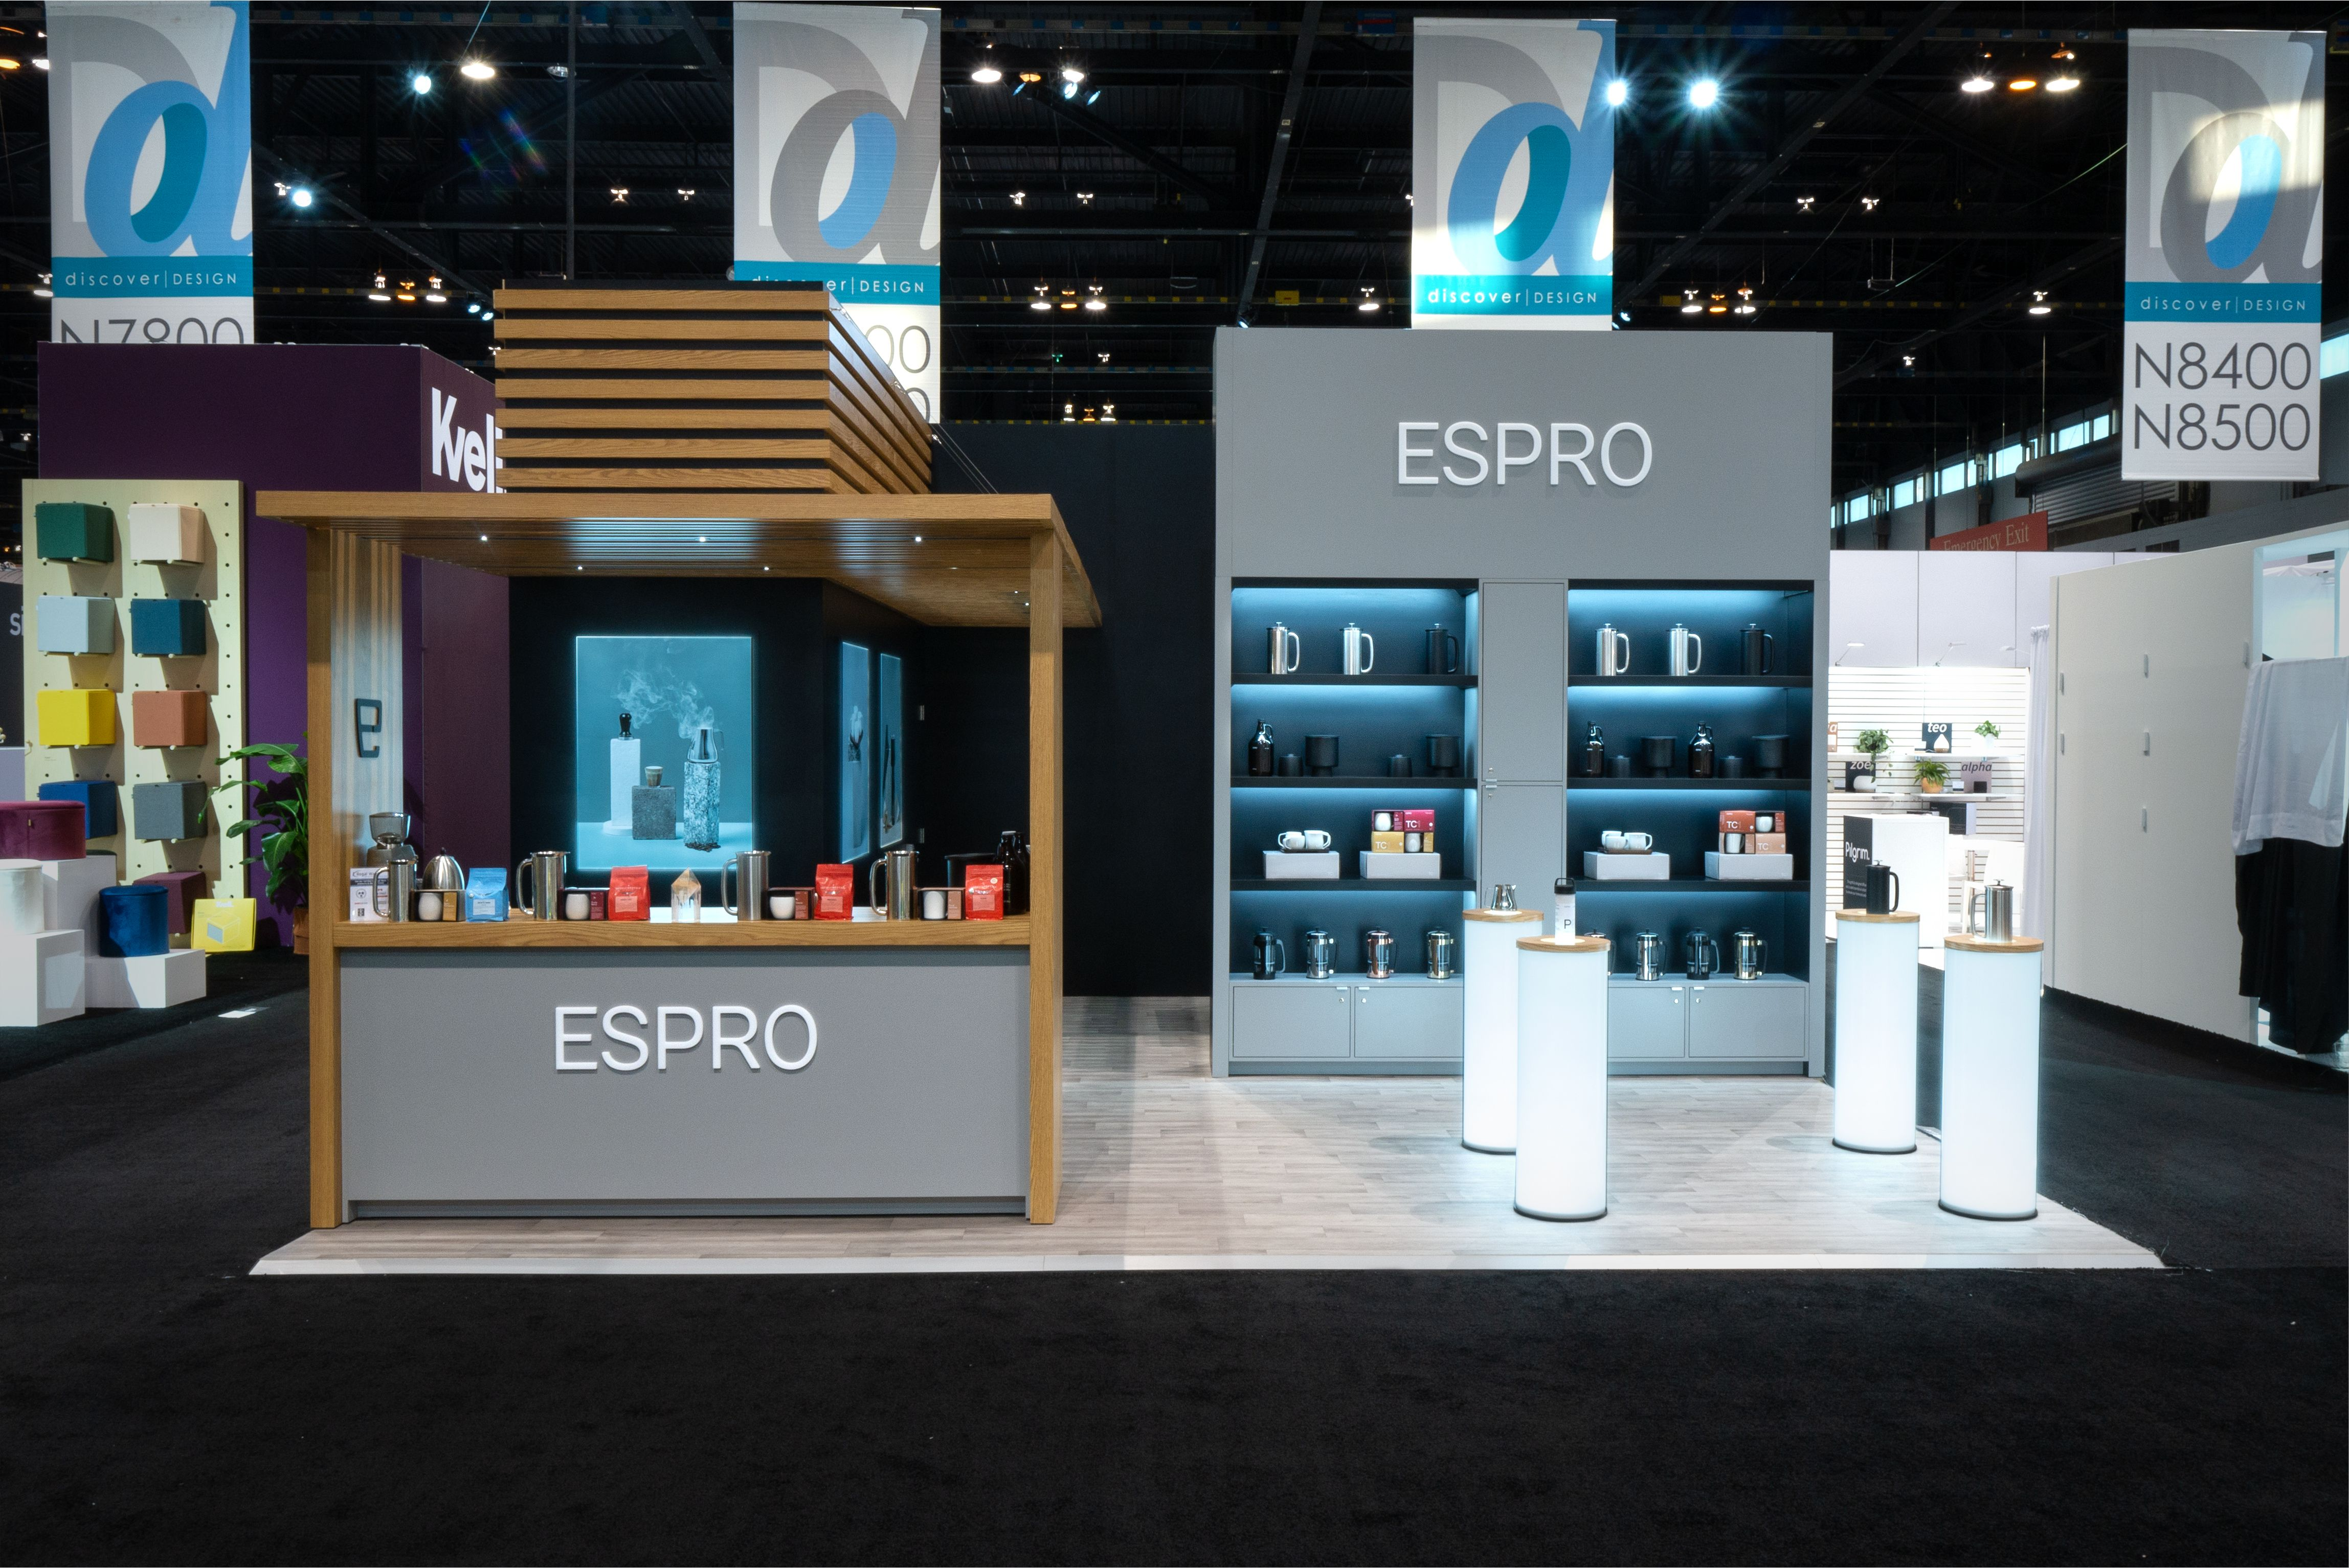 Espro At Ihs 2019 Chicago By Mackenzie Exhibit Tradeshow Exhibit Brand In 2020 Exhibition Booth Design Booth Design Trade Show Display